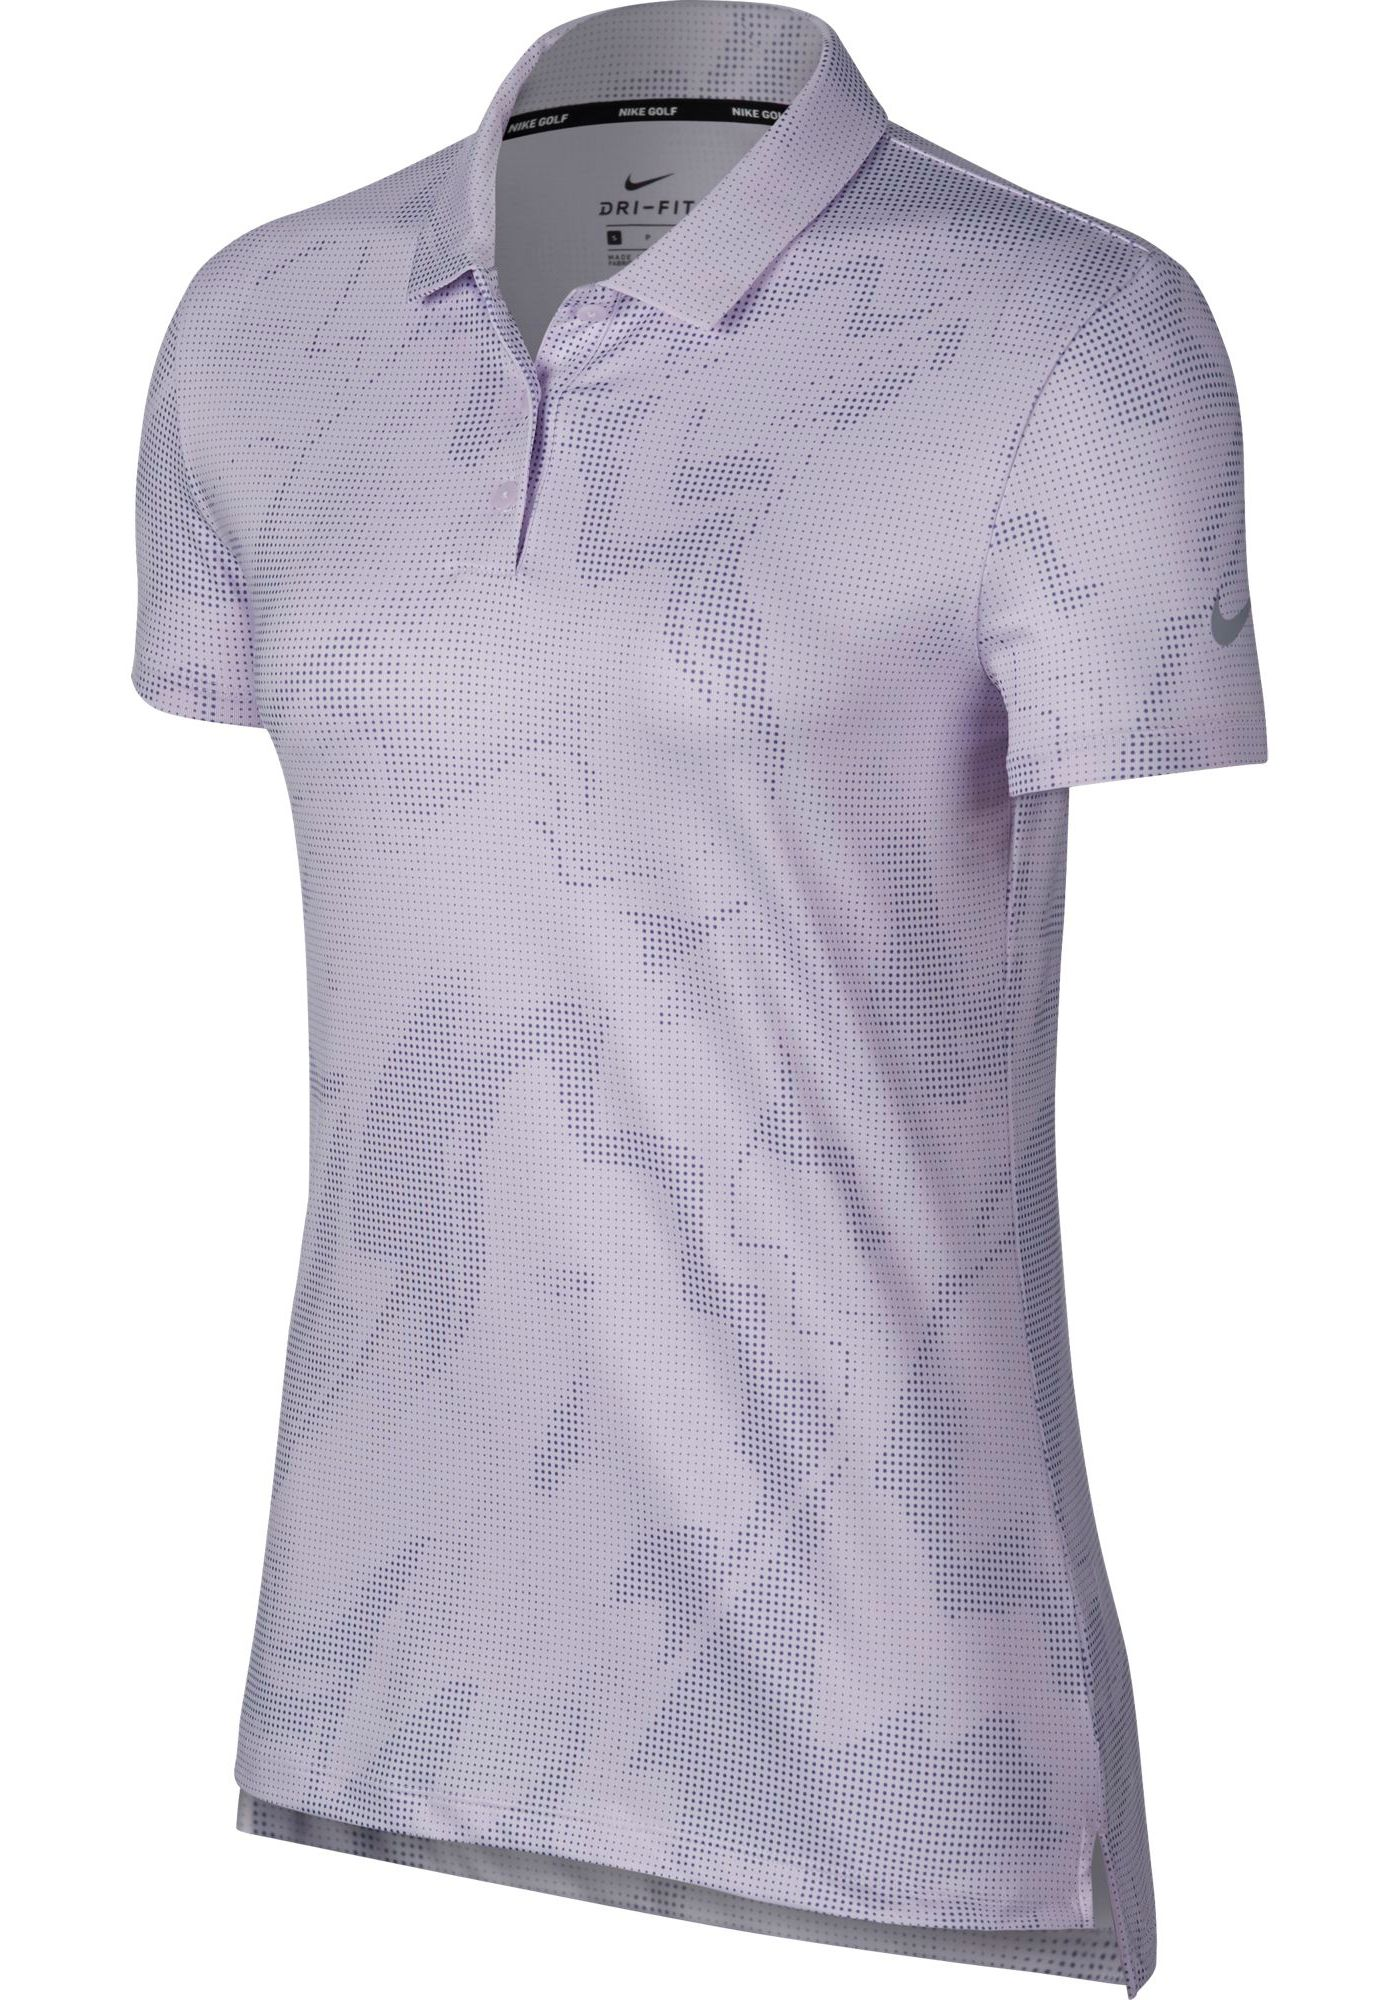 Nike Women's Dry Short Sleeve Printed Golf Polo